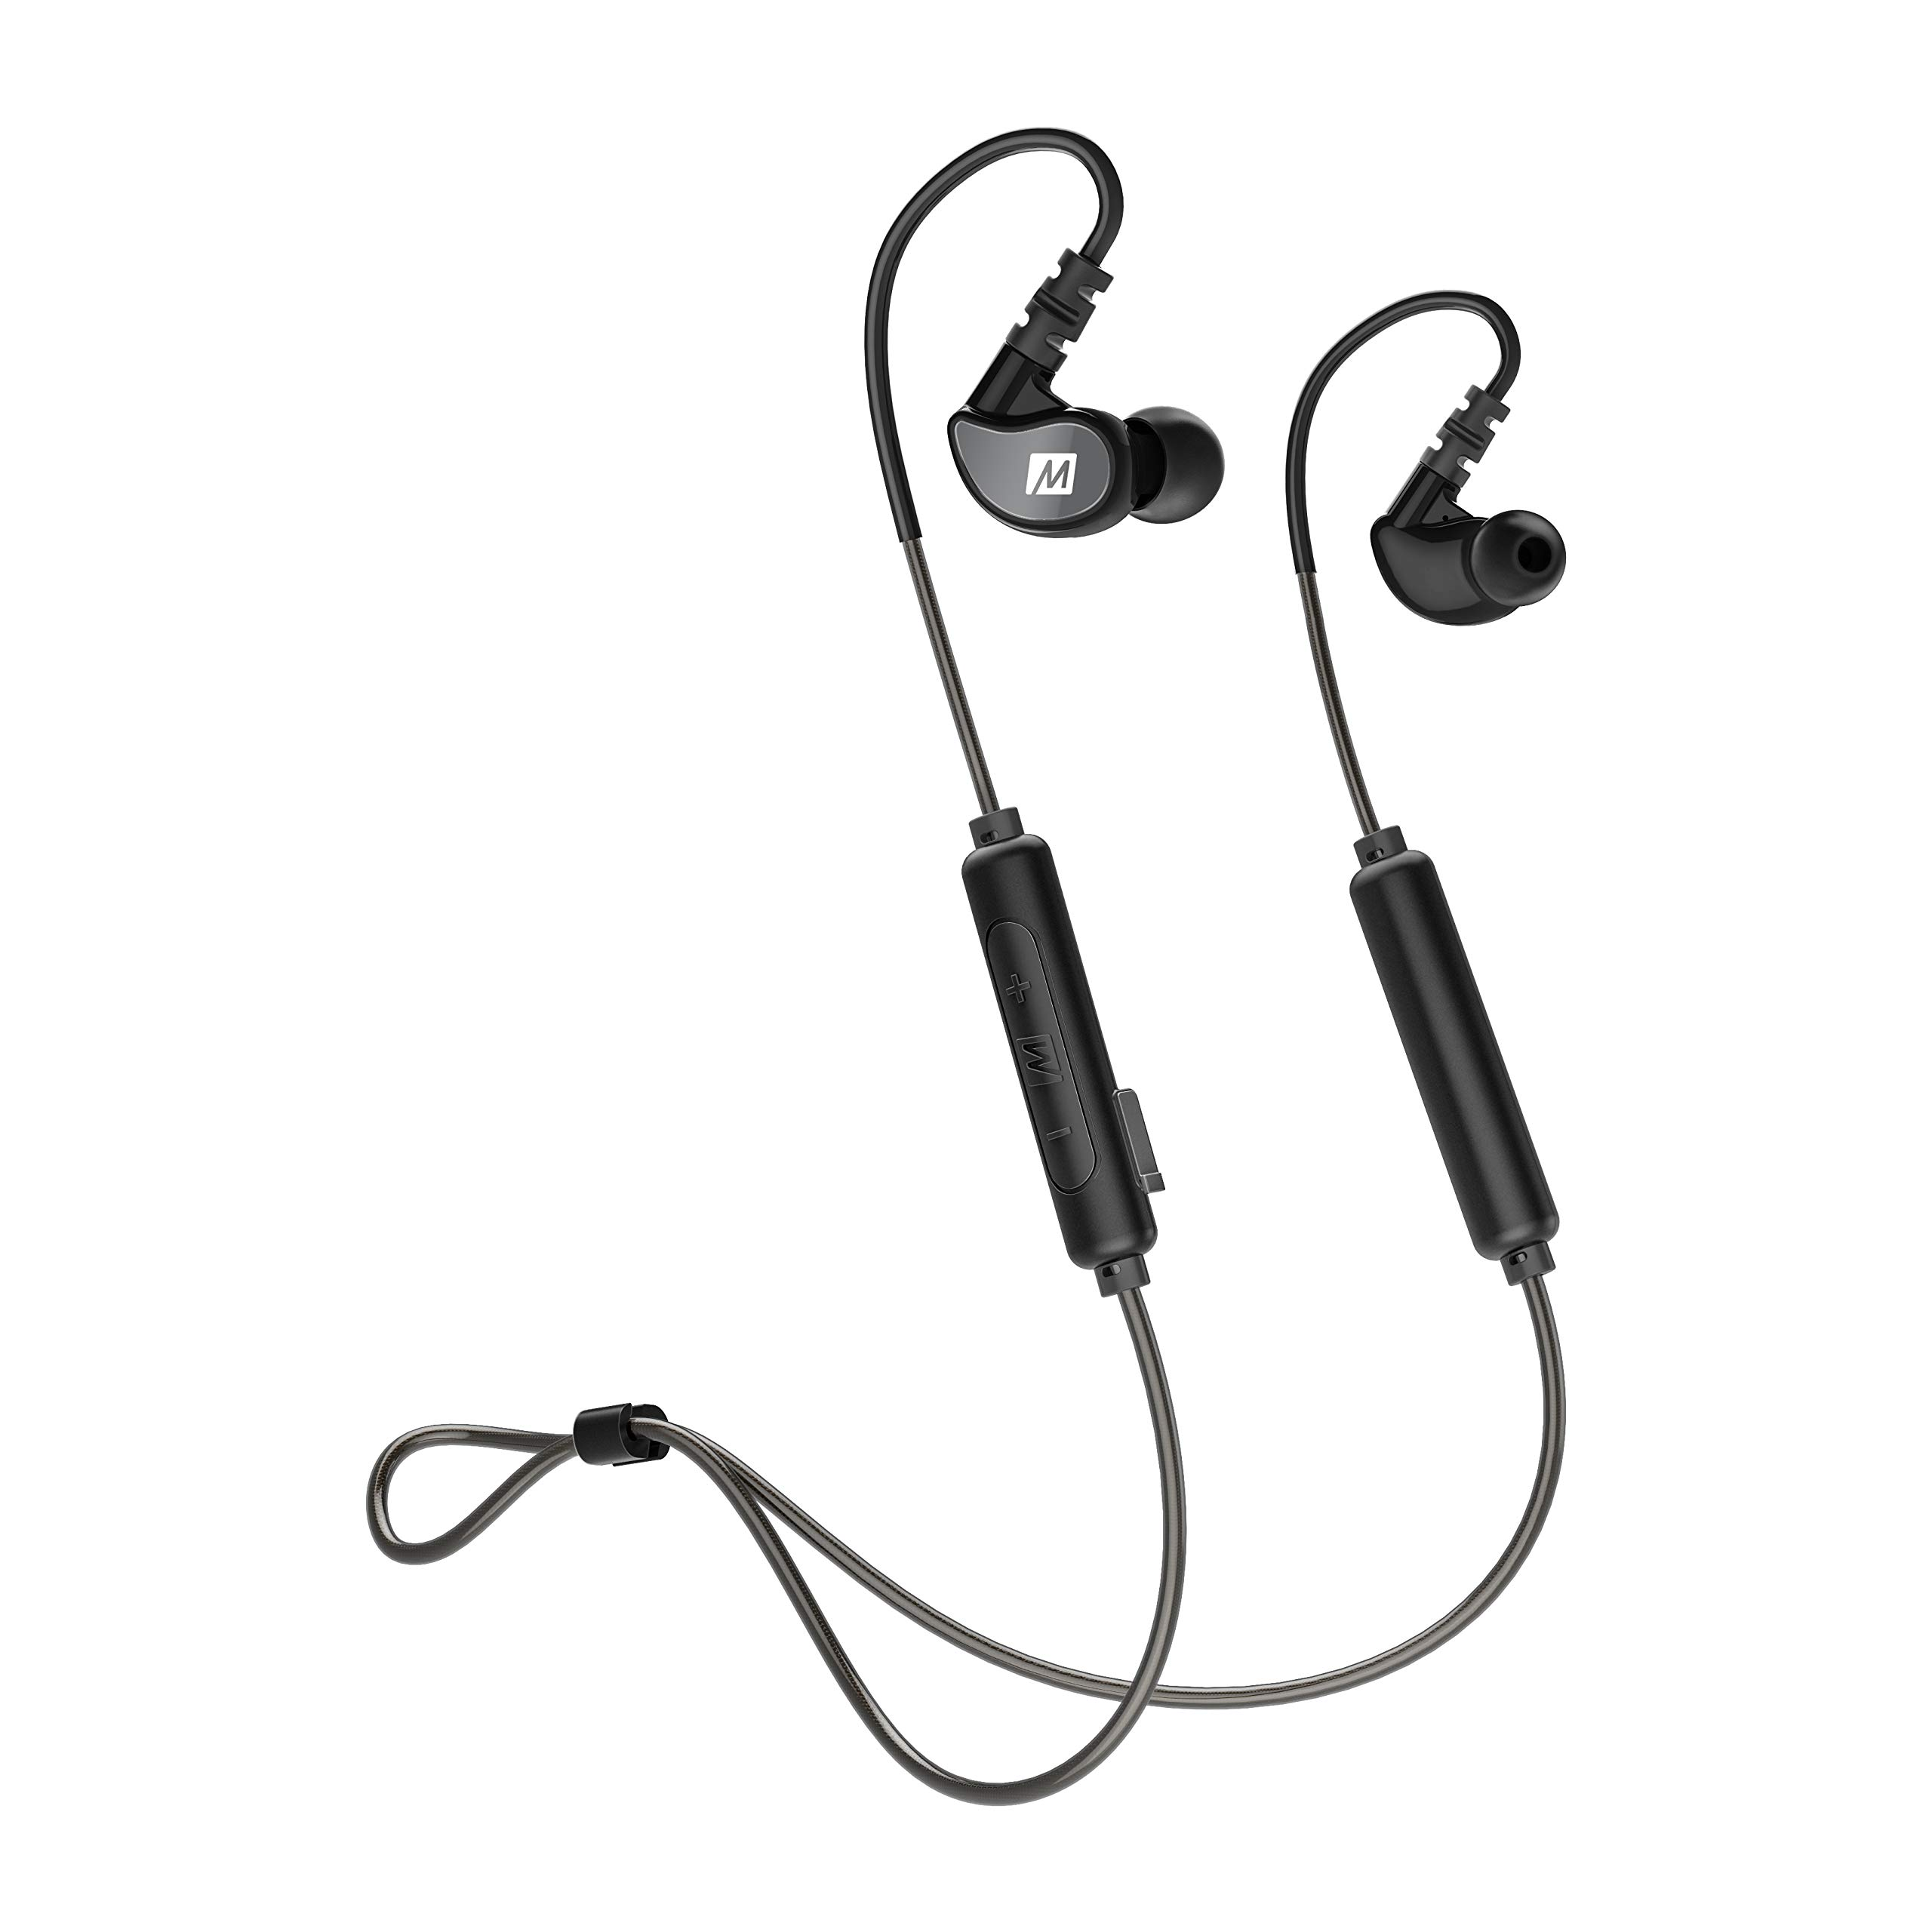 MEE audio M6B Bluetooth Wireless Sweatproof Sports in-Ear Headphones with Headset (2019 Version with Bluetooth 5.0; 9 Hour Battery Life)